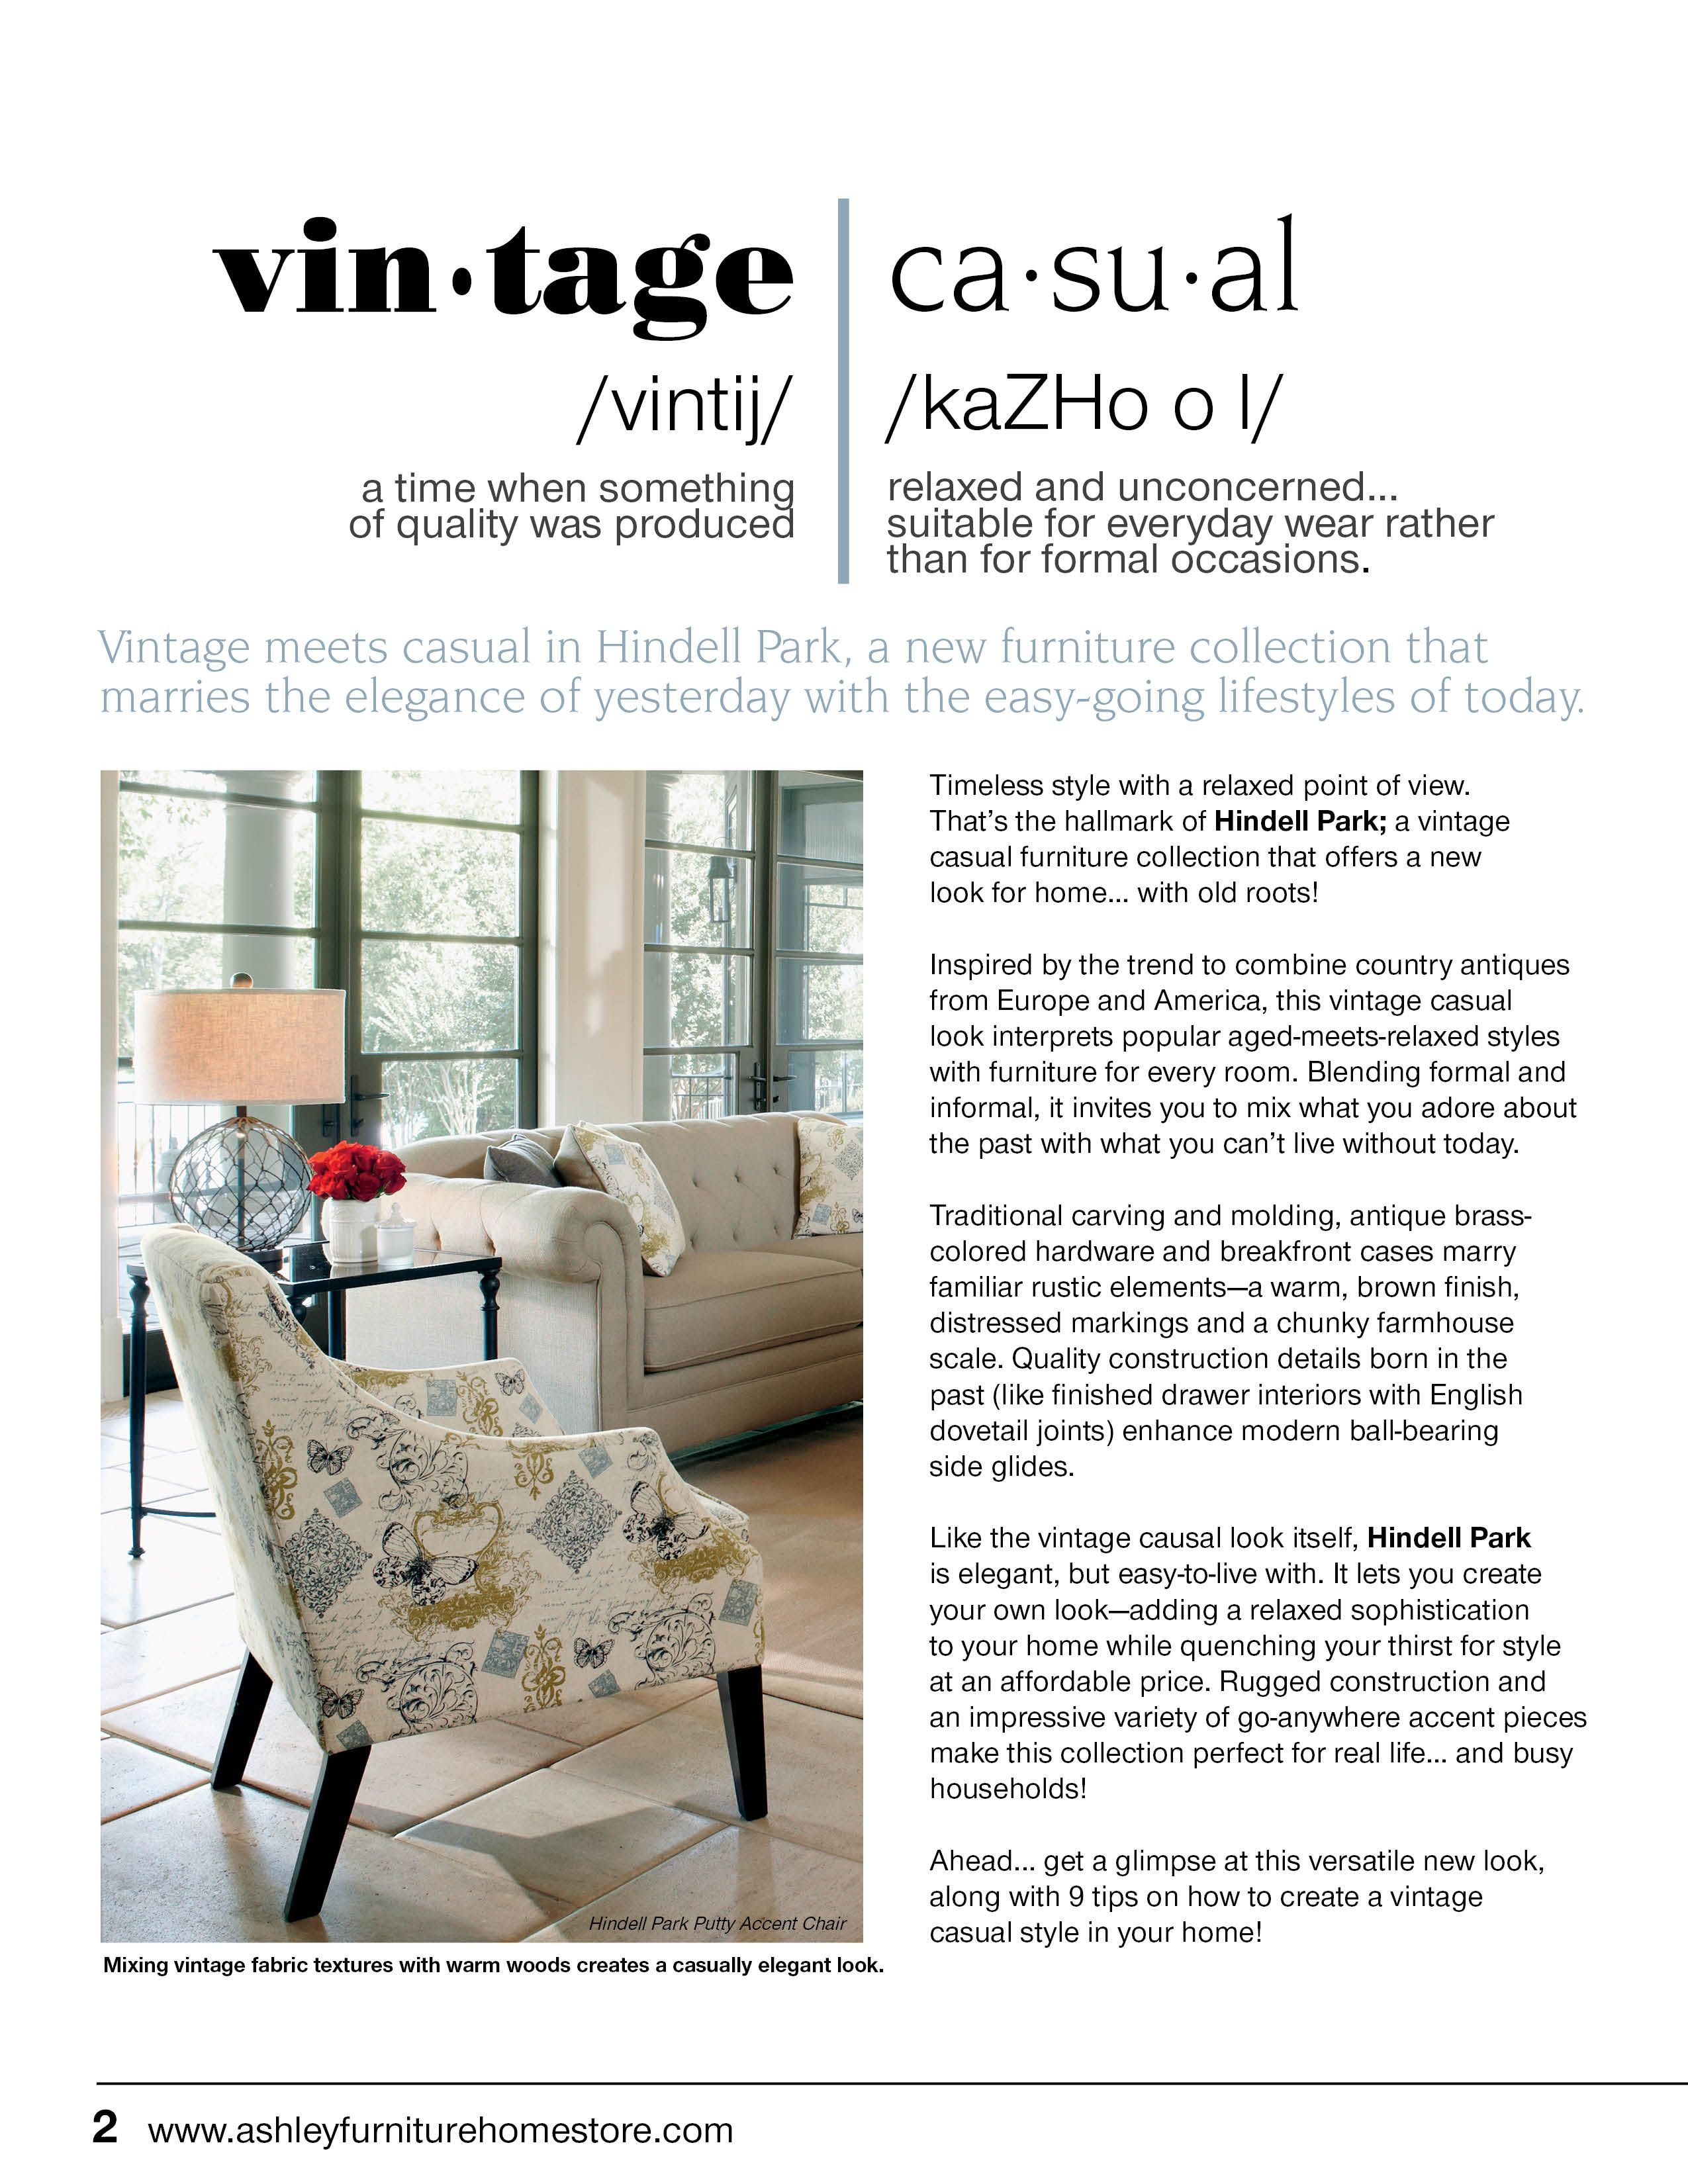 Vintage Meets Casual With The New Hindell Park Furniture Collection